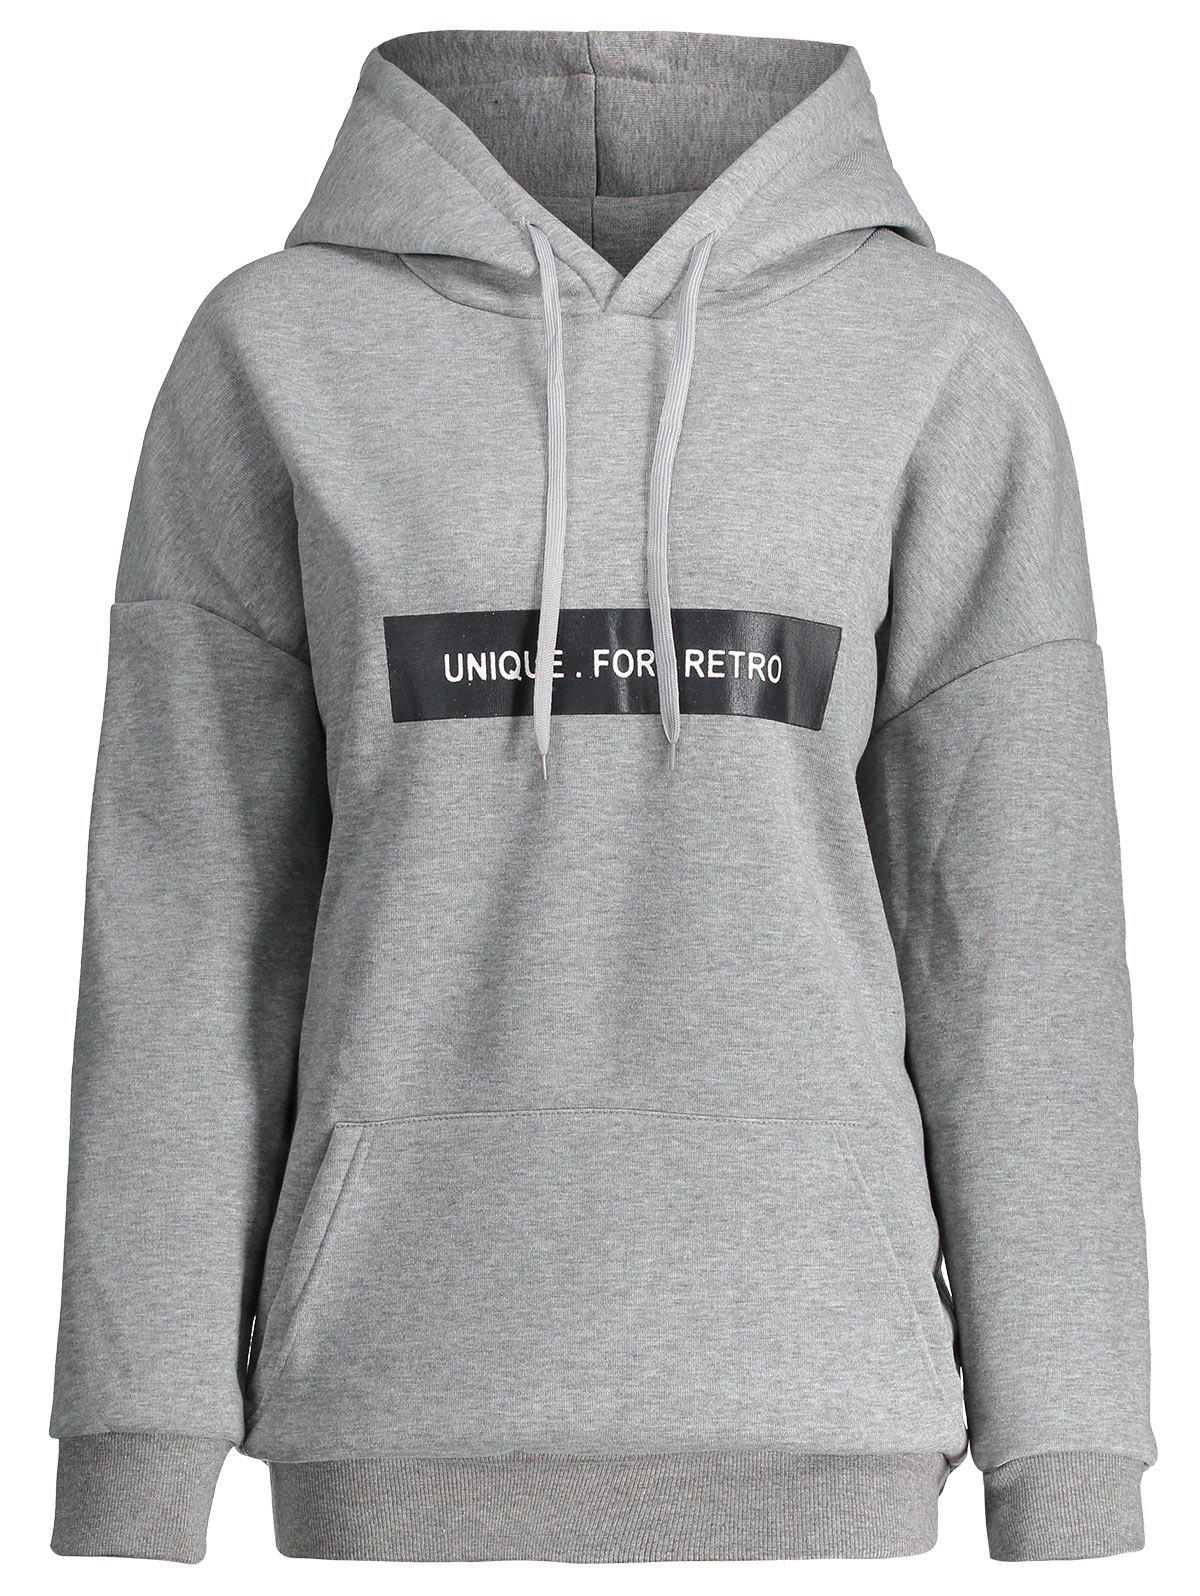 Cheap Pocket Plus Size Unique For Retro Hoodie